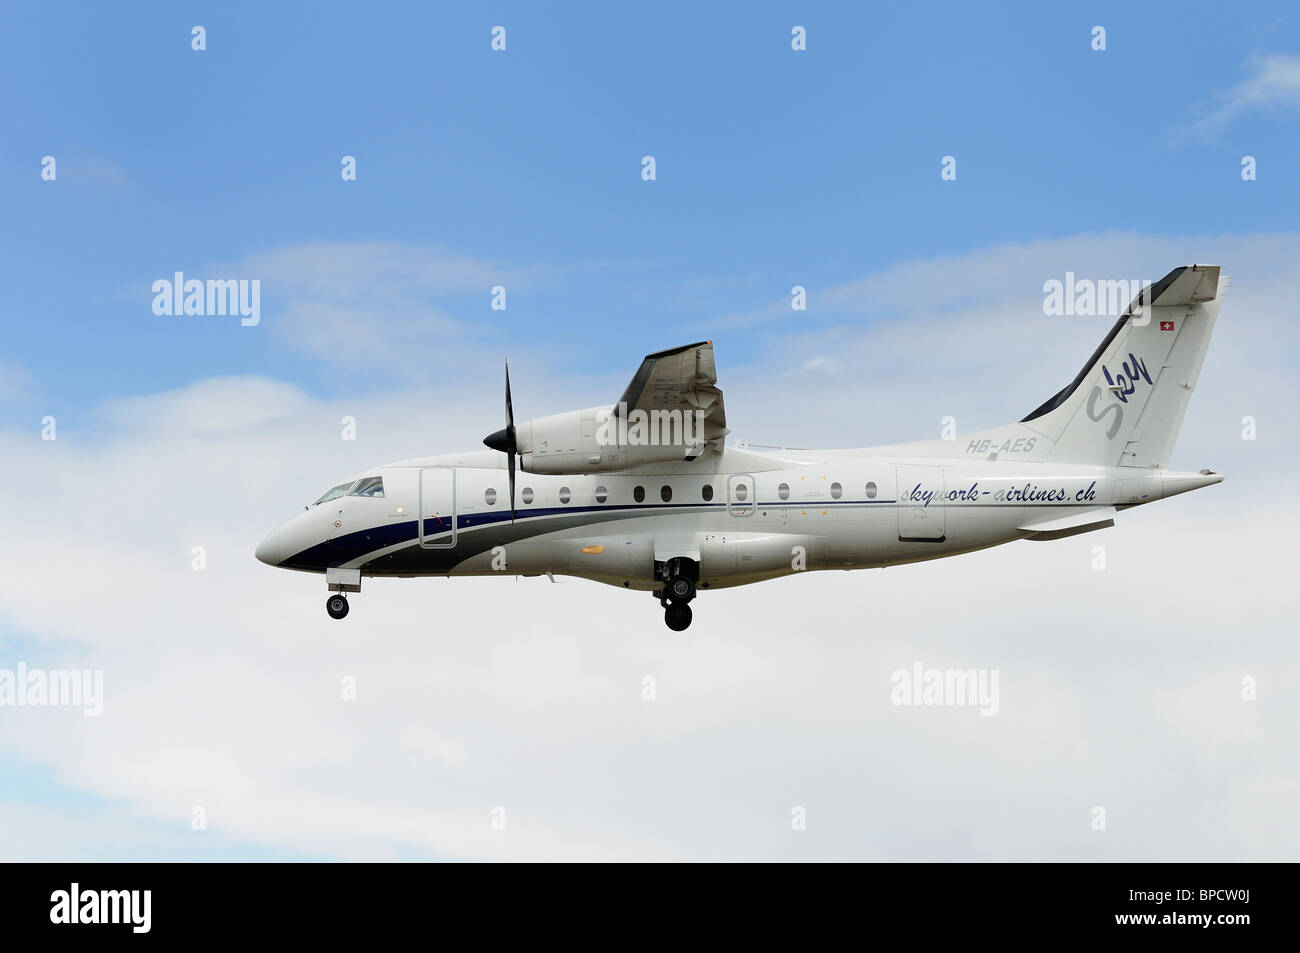 Dornier 328-110 of Skywork-Airlines, Switzerland arrives at RAF Fairford to support the Patrouille Suisse aerobatic - Stock Image